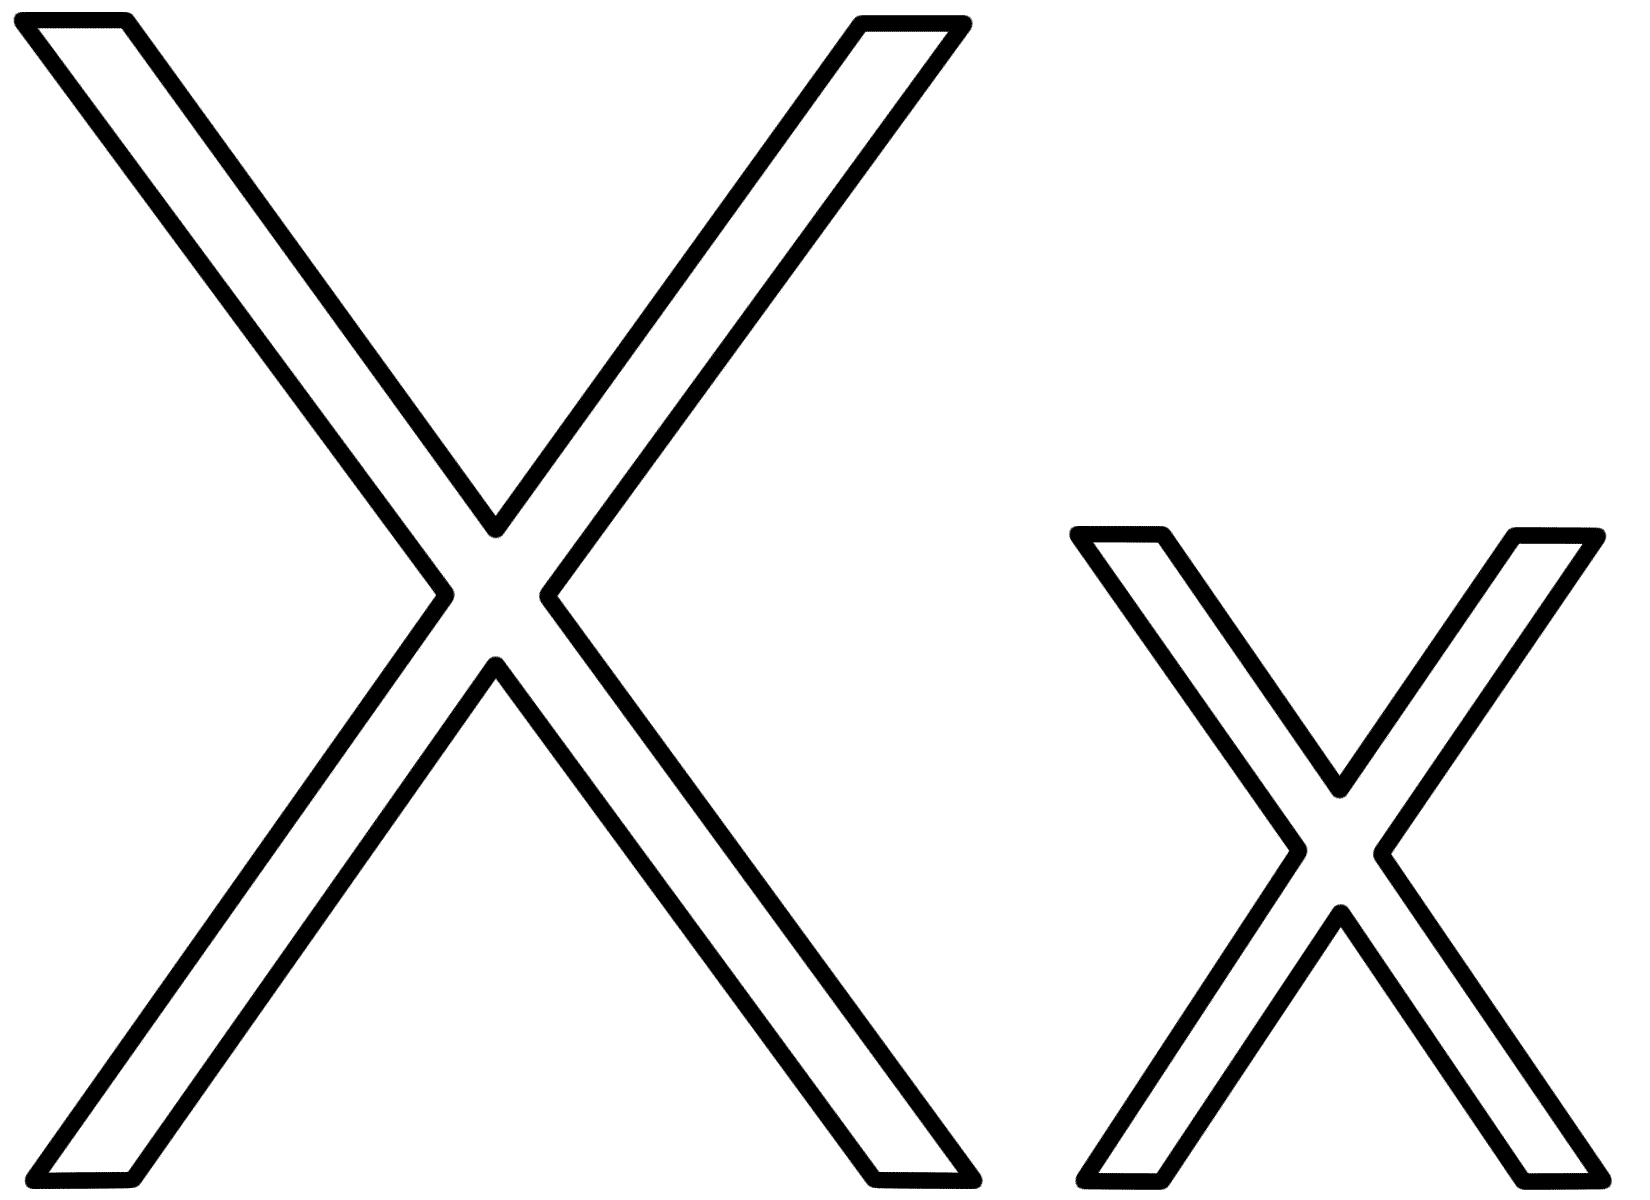 x coloring page letter x coloring page alphabet coloring page x